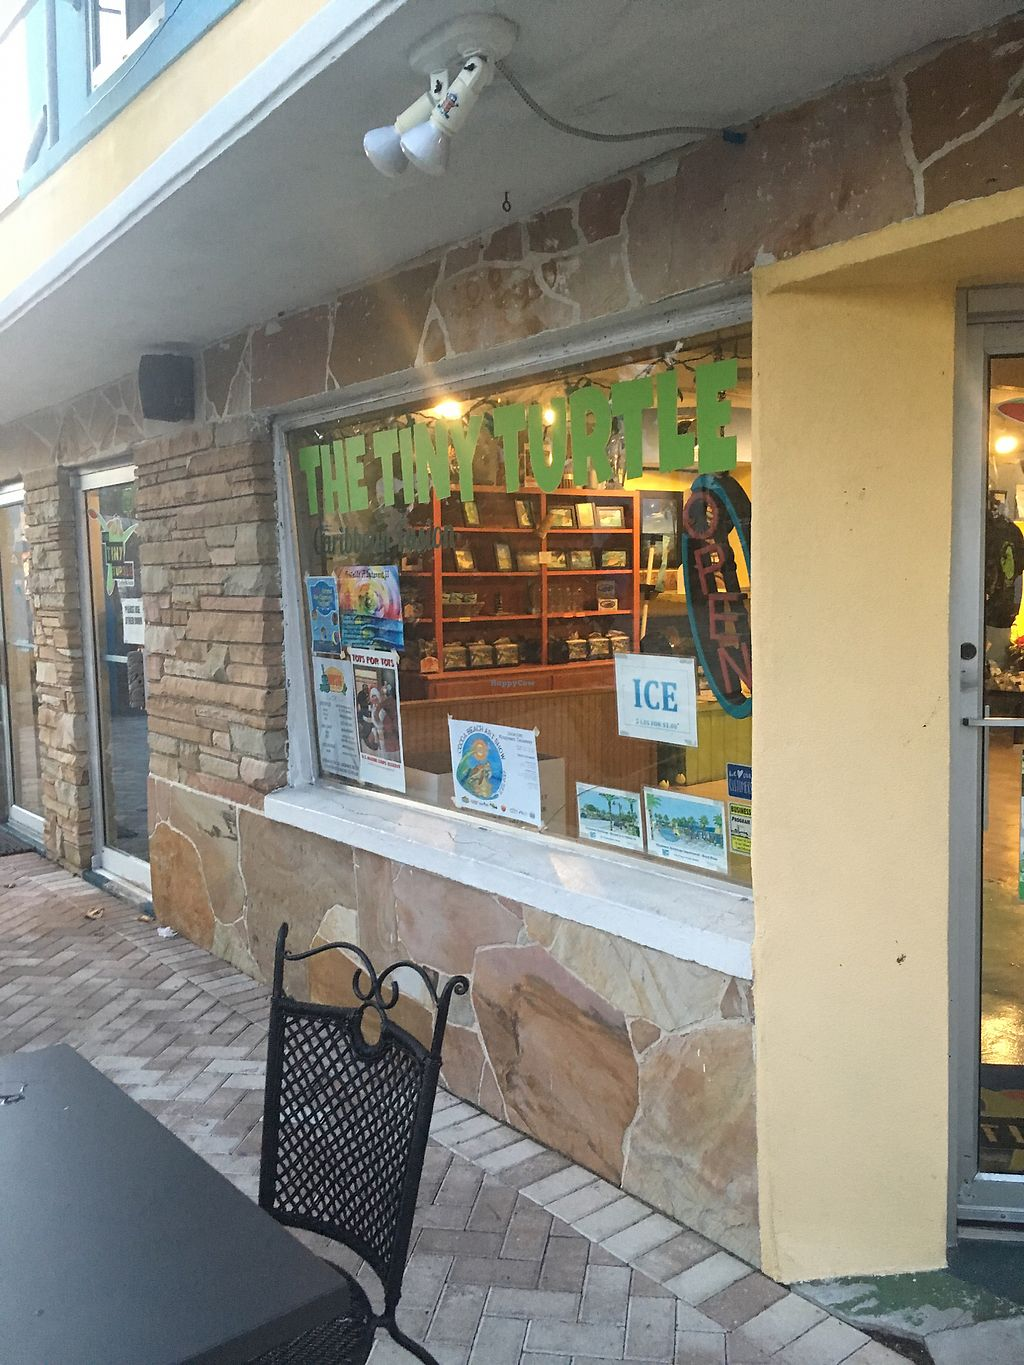 """Photo of The Tiny Turtle  by <a href=""""/members/profile/Mariarosekicks"""">Mariarosekicks</a> <br/>Front of restaurant  <br/> November 27, 2017  - <a href='/contact/abuse/image/106038/329731'>Report</a>"""